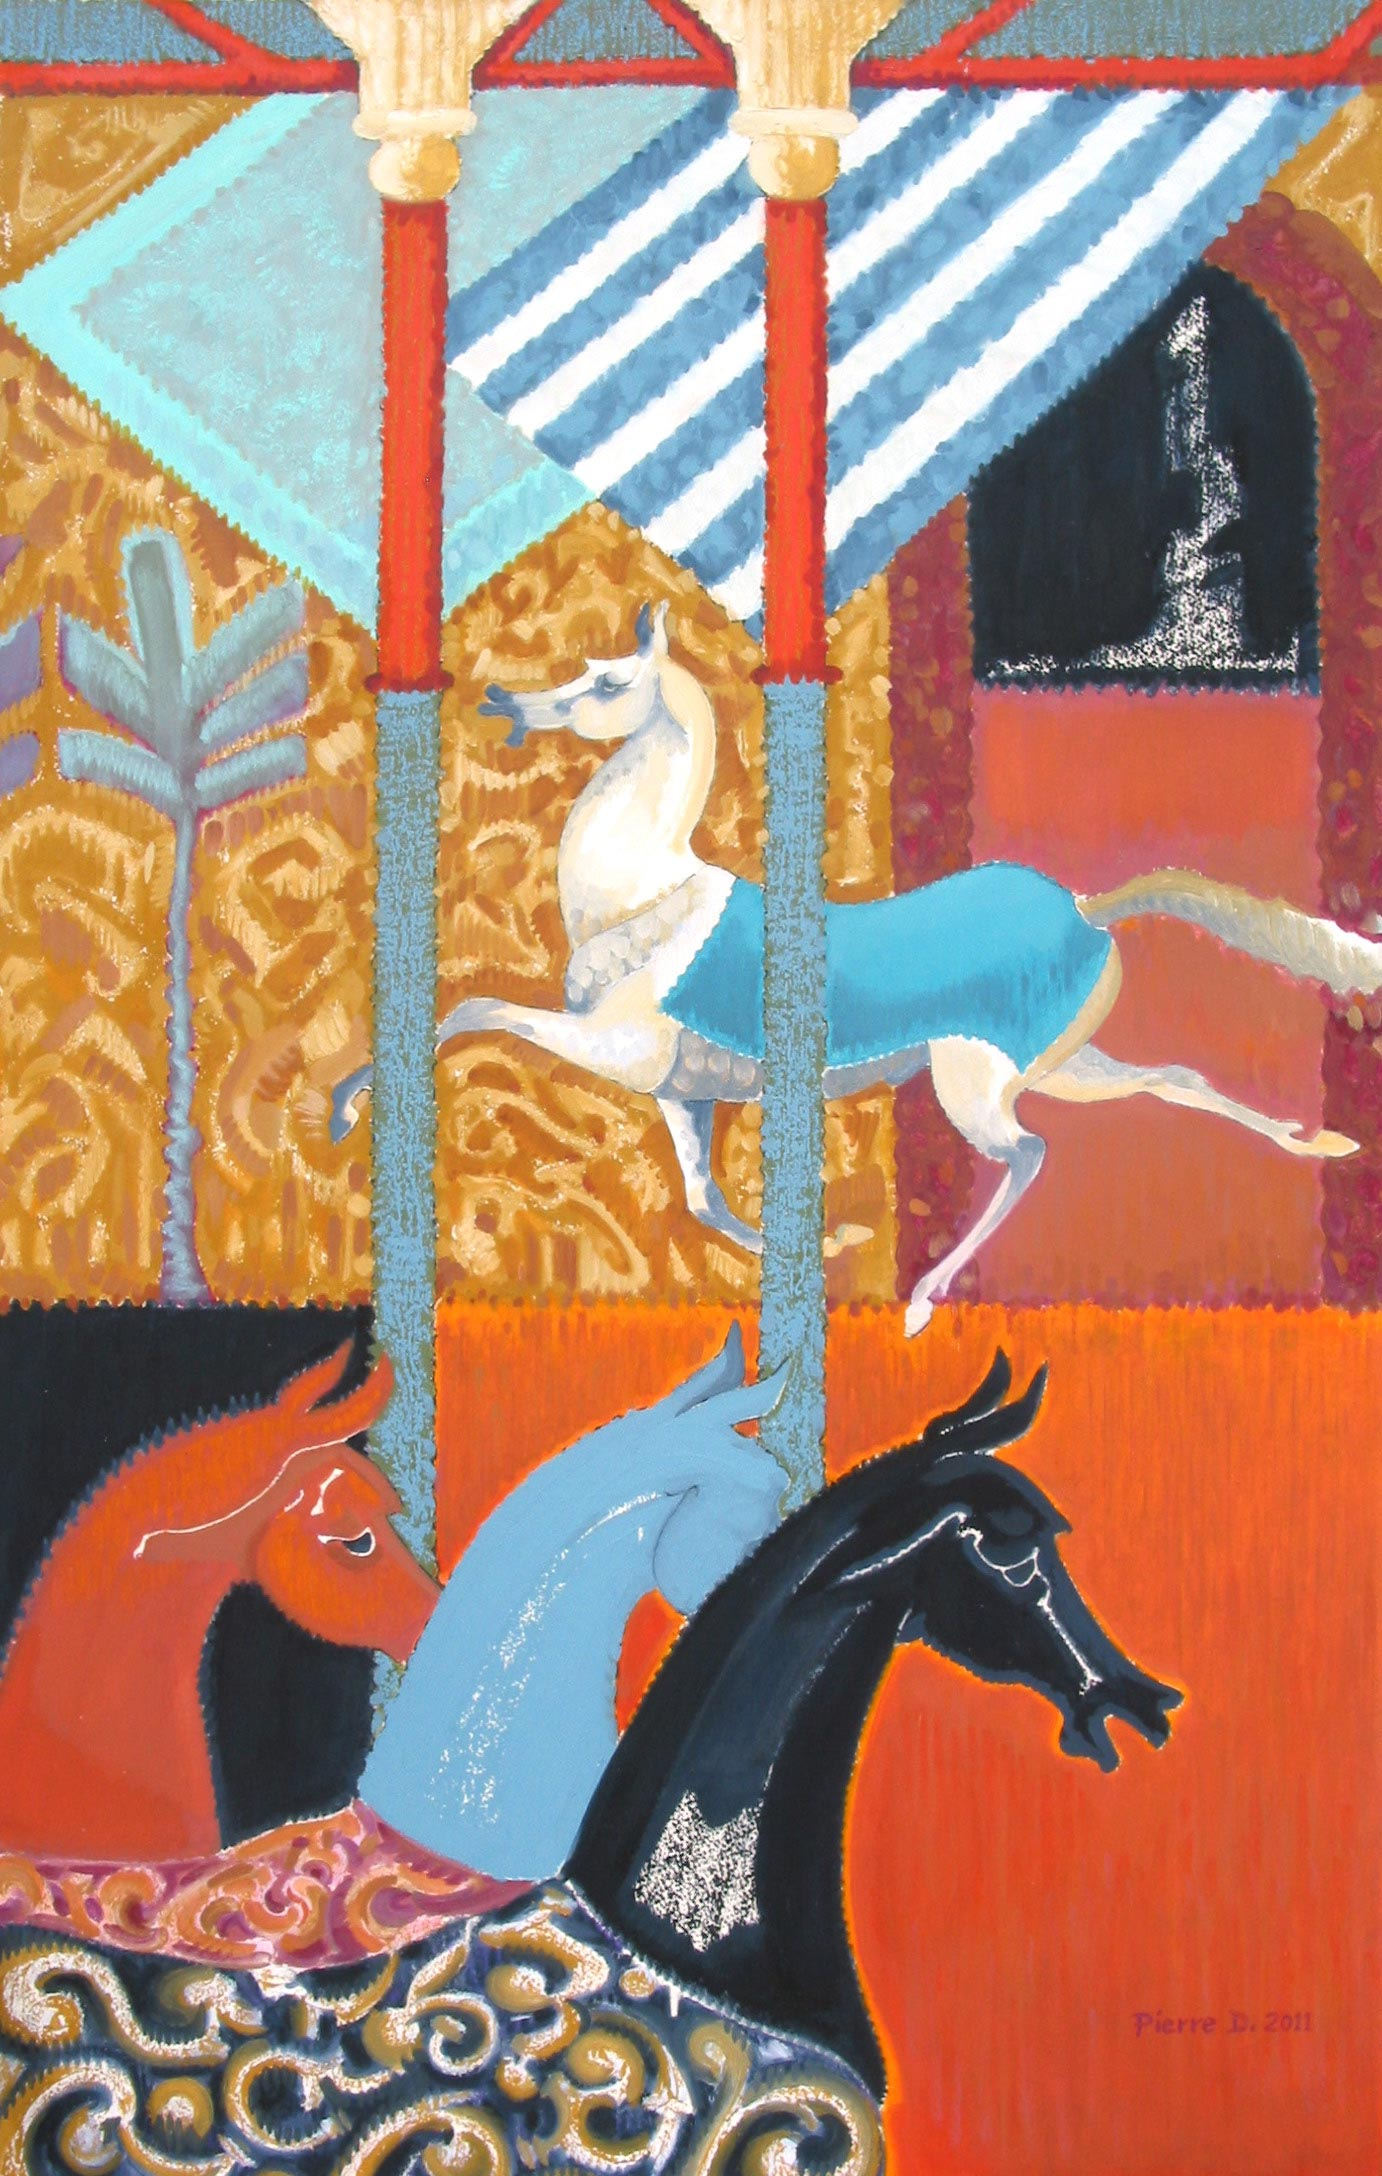 Moghul ll The Turquoise Blanket   ©  Oil on fine paper  96 cm high x 61.5 cm wide  A freer horse against a flat, frieze of richly blanketed horses in the foreground, with stark, striped awnings and a brocade backdrop - the composition is a patchwork of textiles.